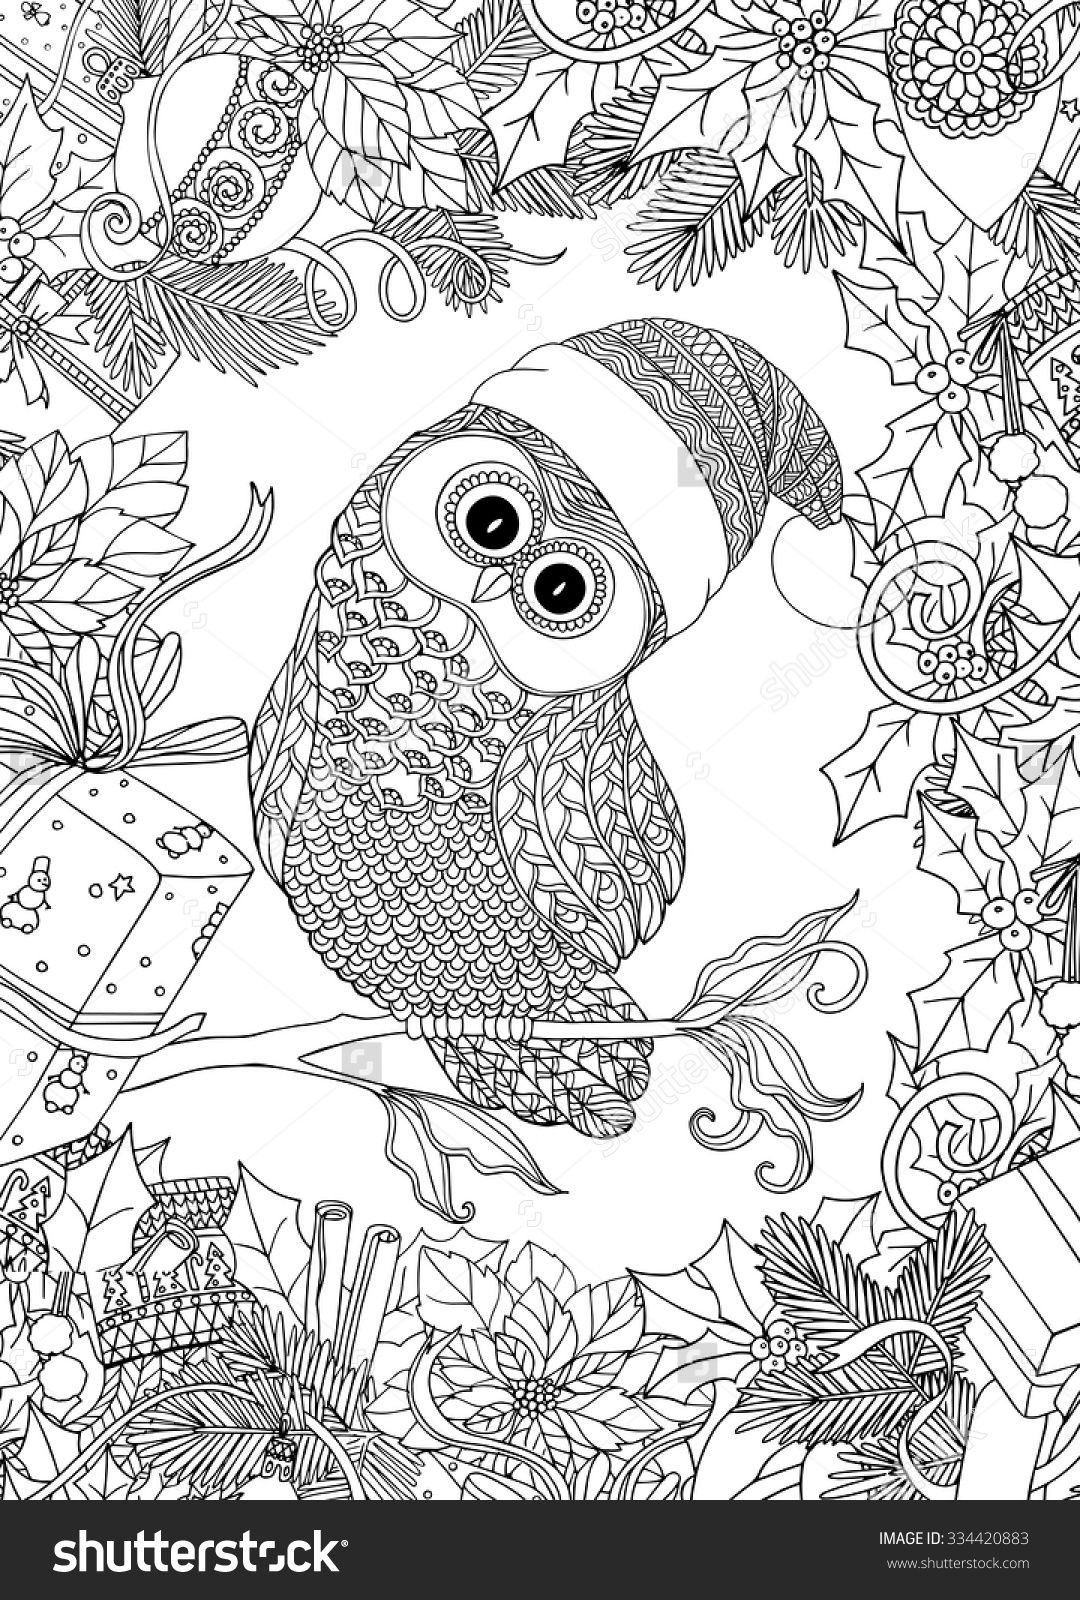 Santa Coloring Pages For Adults With Book Adult And Older Children Page Cute